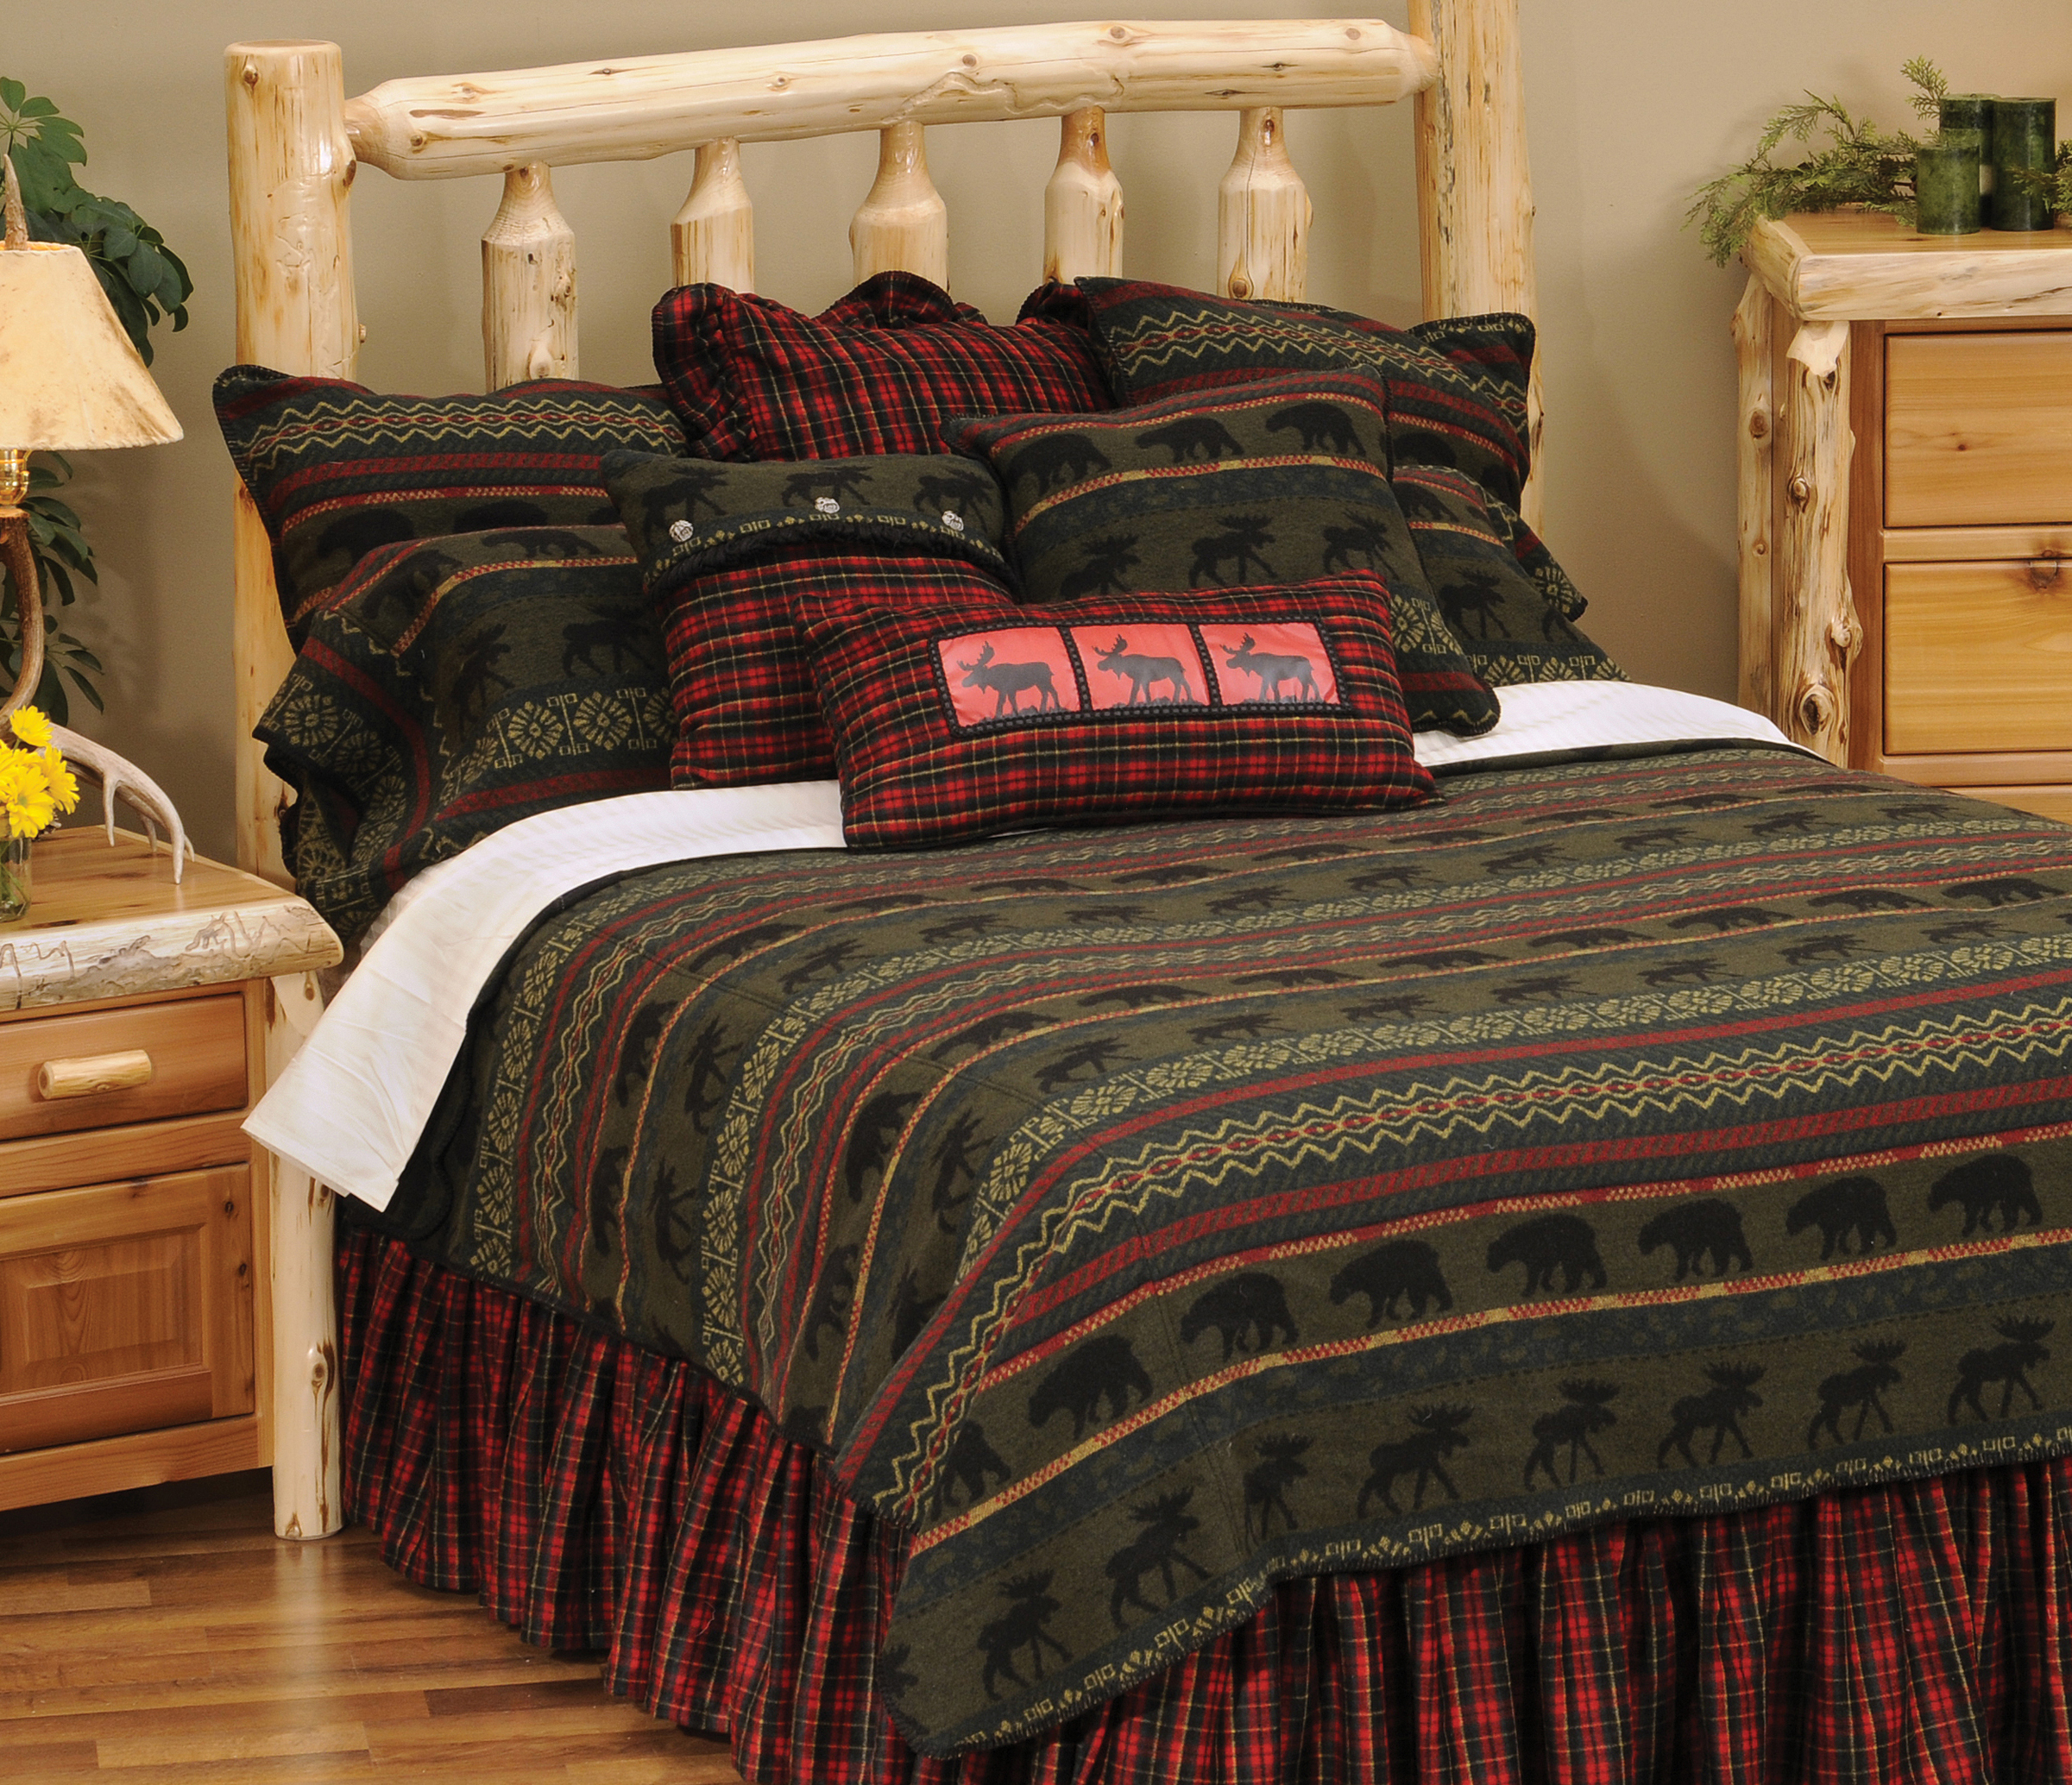 Rustic cabin furnishings luxury bedding - Bedding and curtains for bedrooms ...